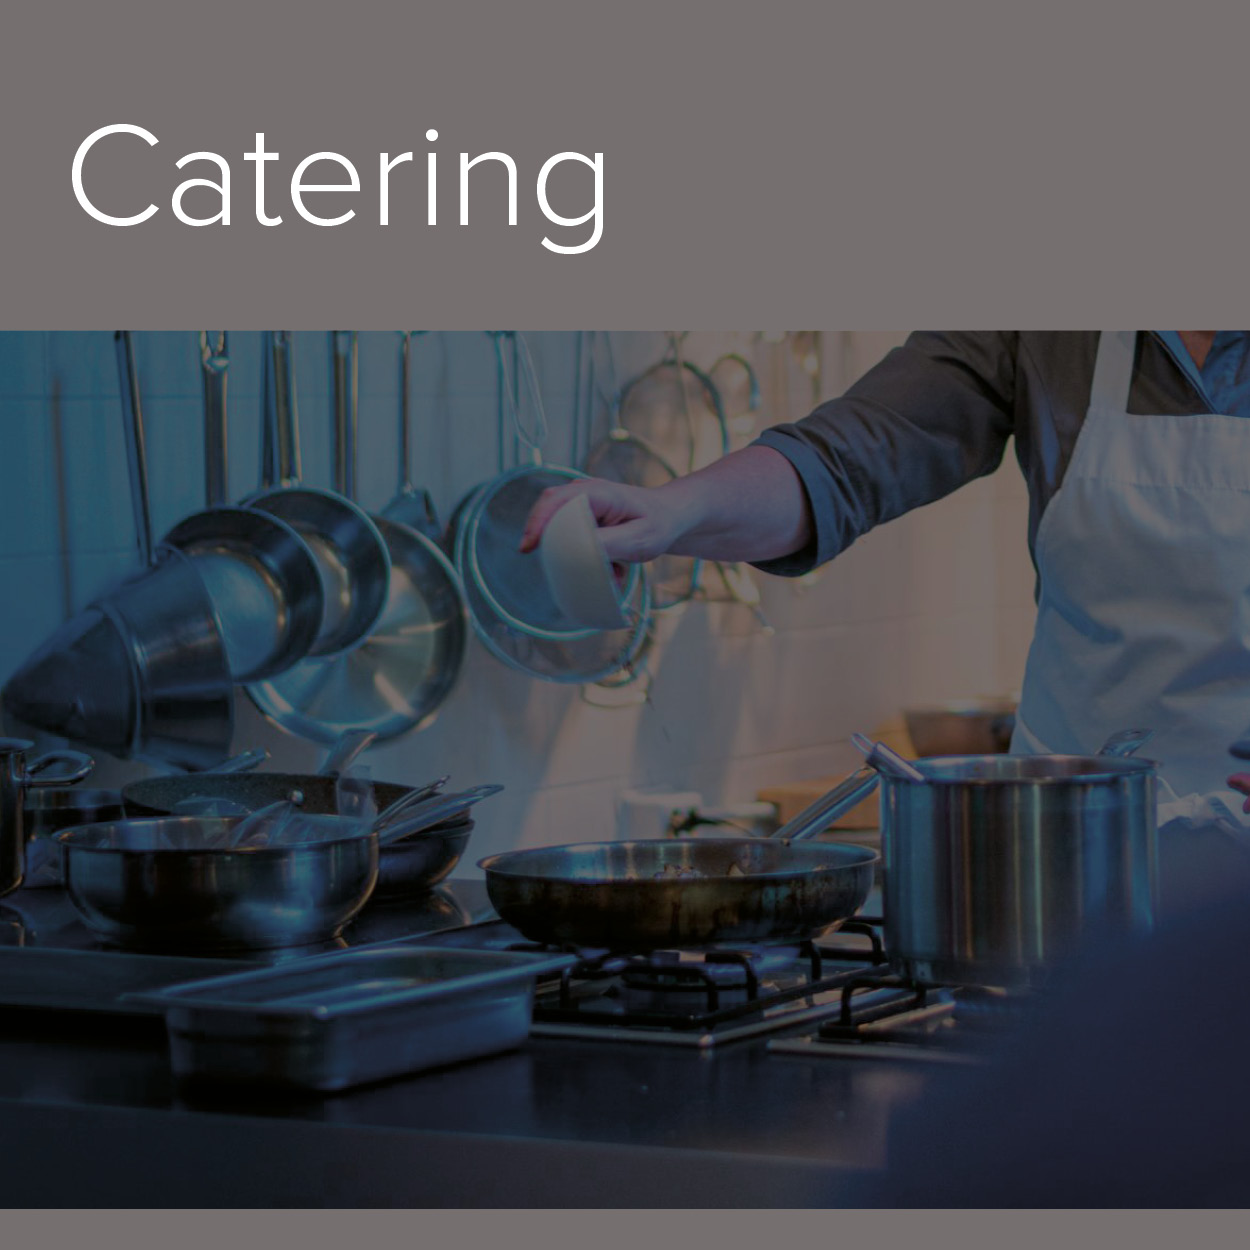 A decorative image of the Catering industry in which Alphasonics cater to.